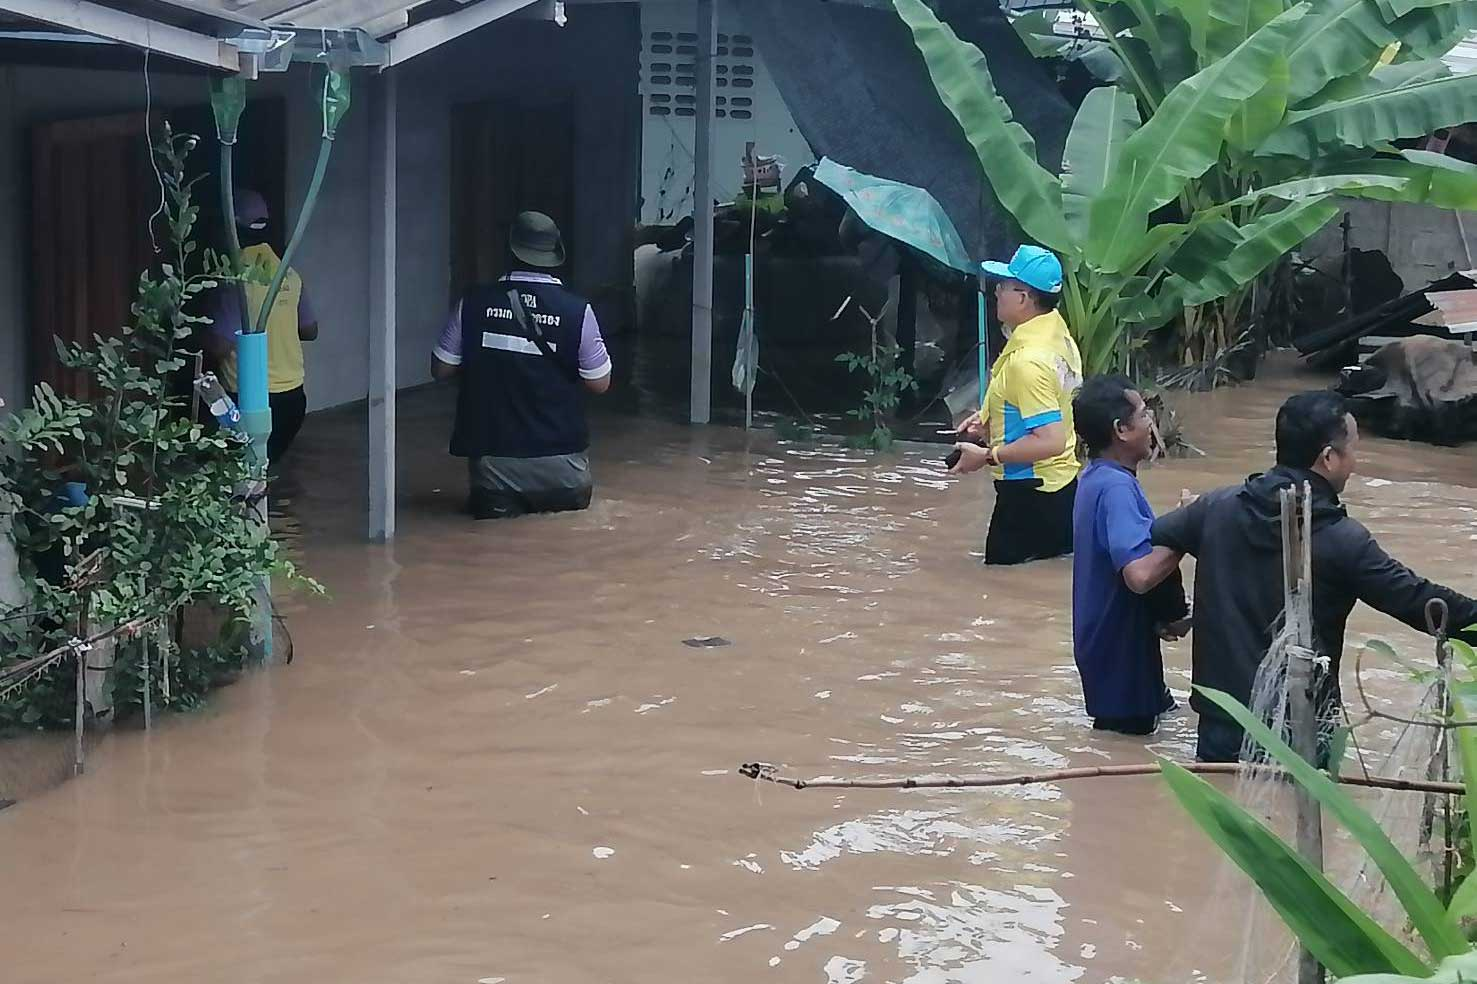 Nakhon Ratchasima governor Wichian Chantaranotha (yellow shirt, centre) wades in water up to his thighs as he leads officials to inspect flooded-houses in tambon Khanong Phra of Pak Chong district on Friday morning. (Photo: Prasit Tangprasert)